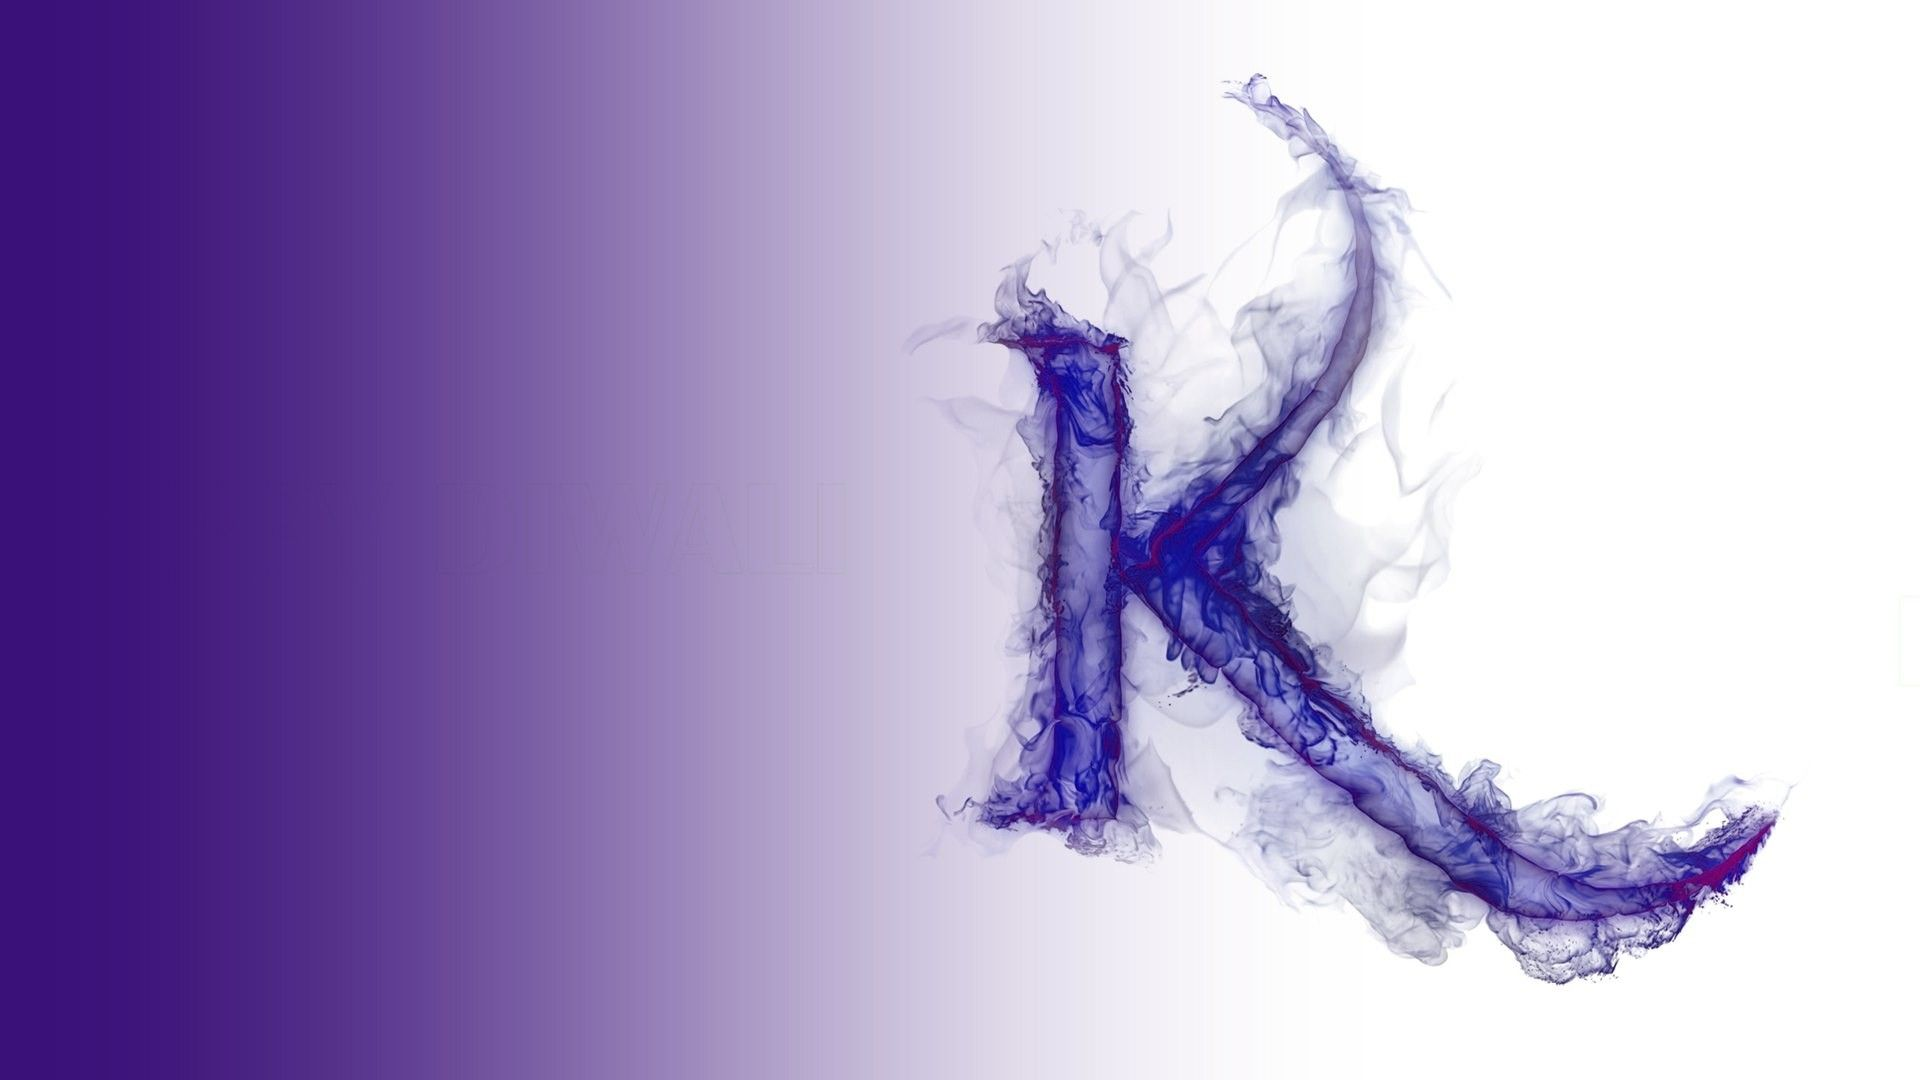 K Wallpapers Top Free K Backgrounds Wallpaperaccess